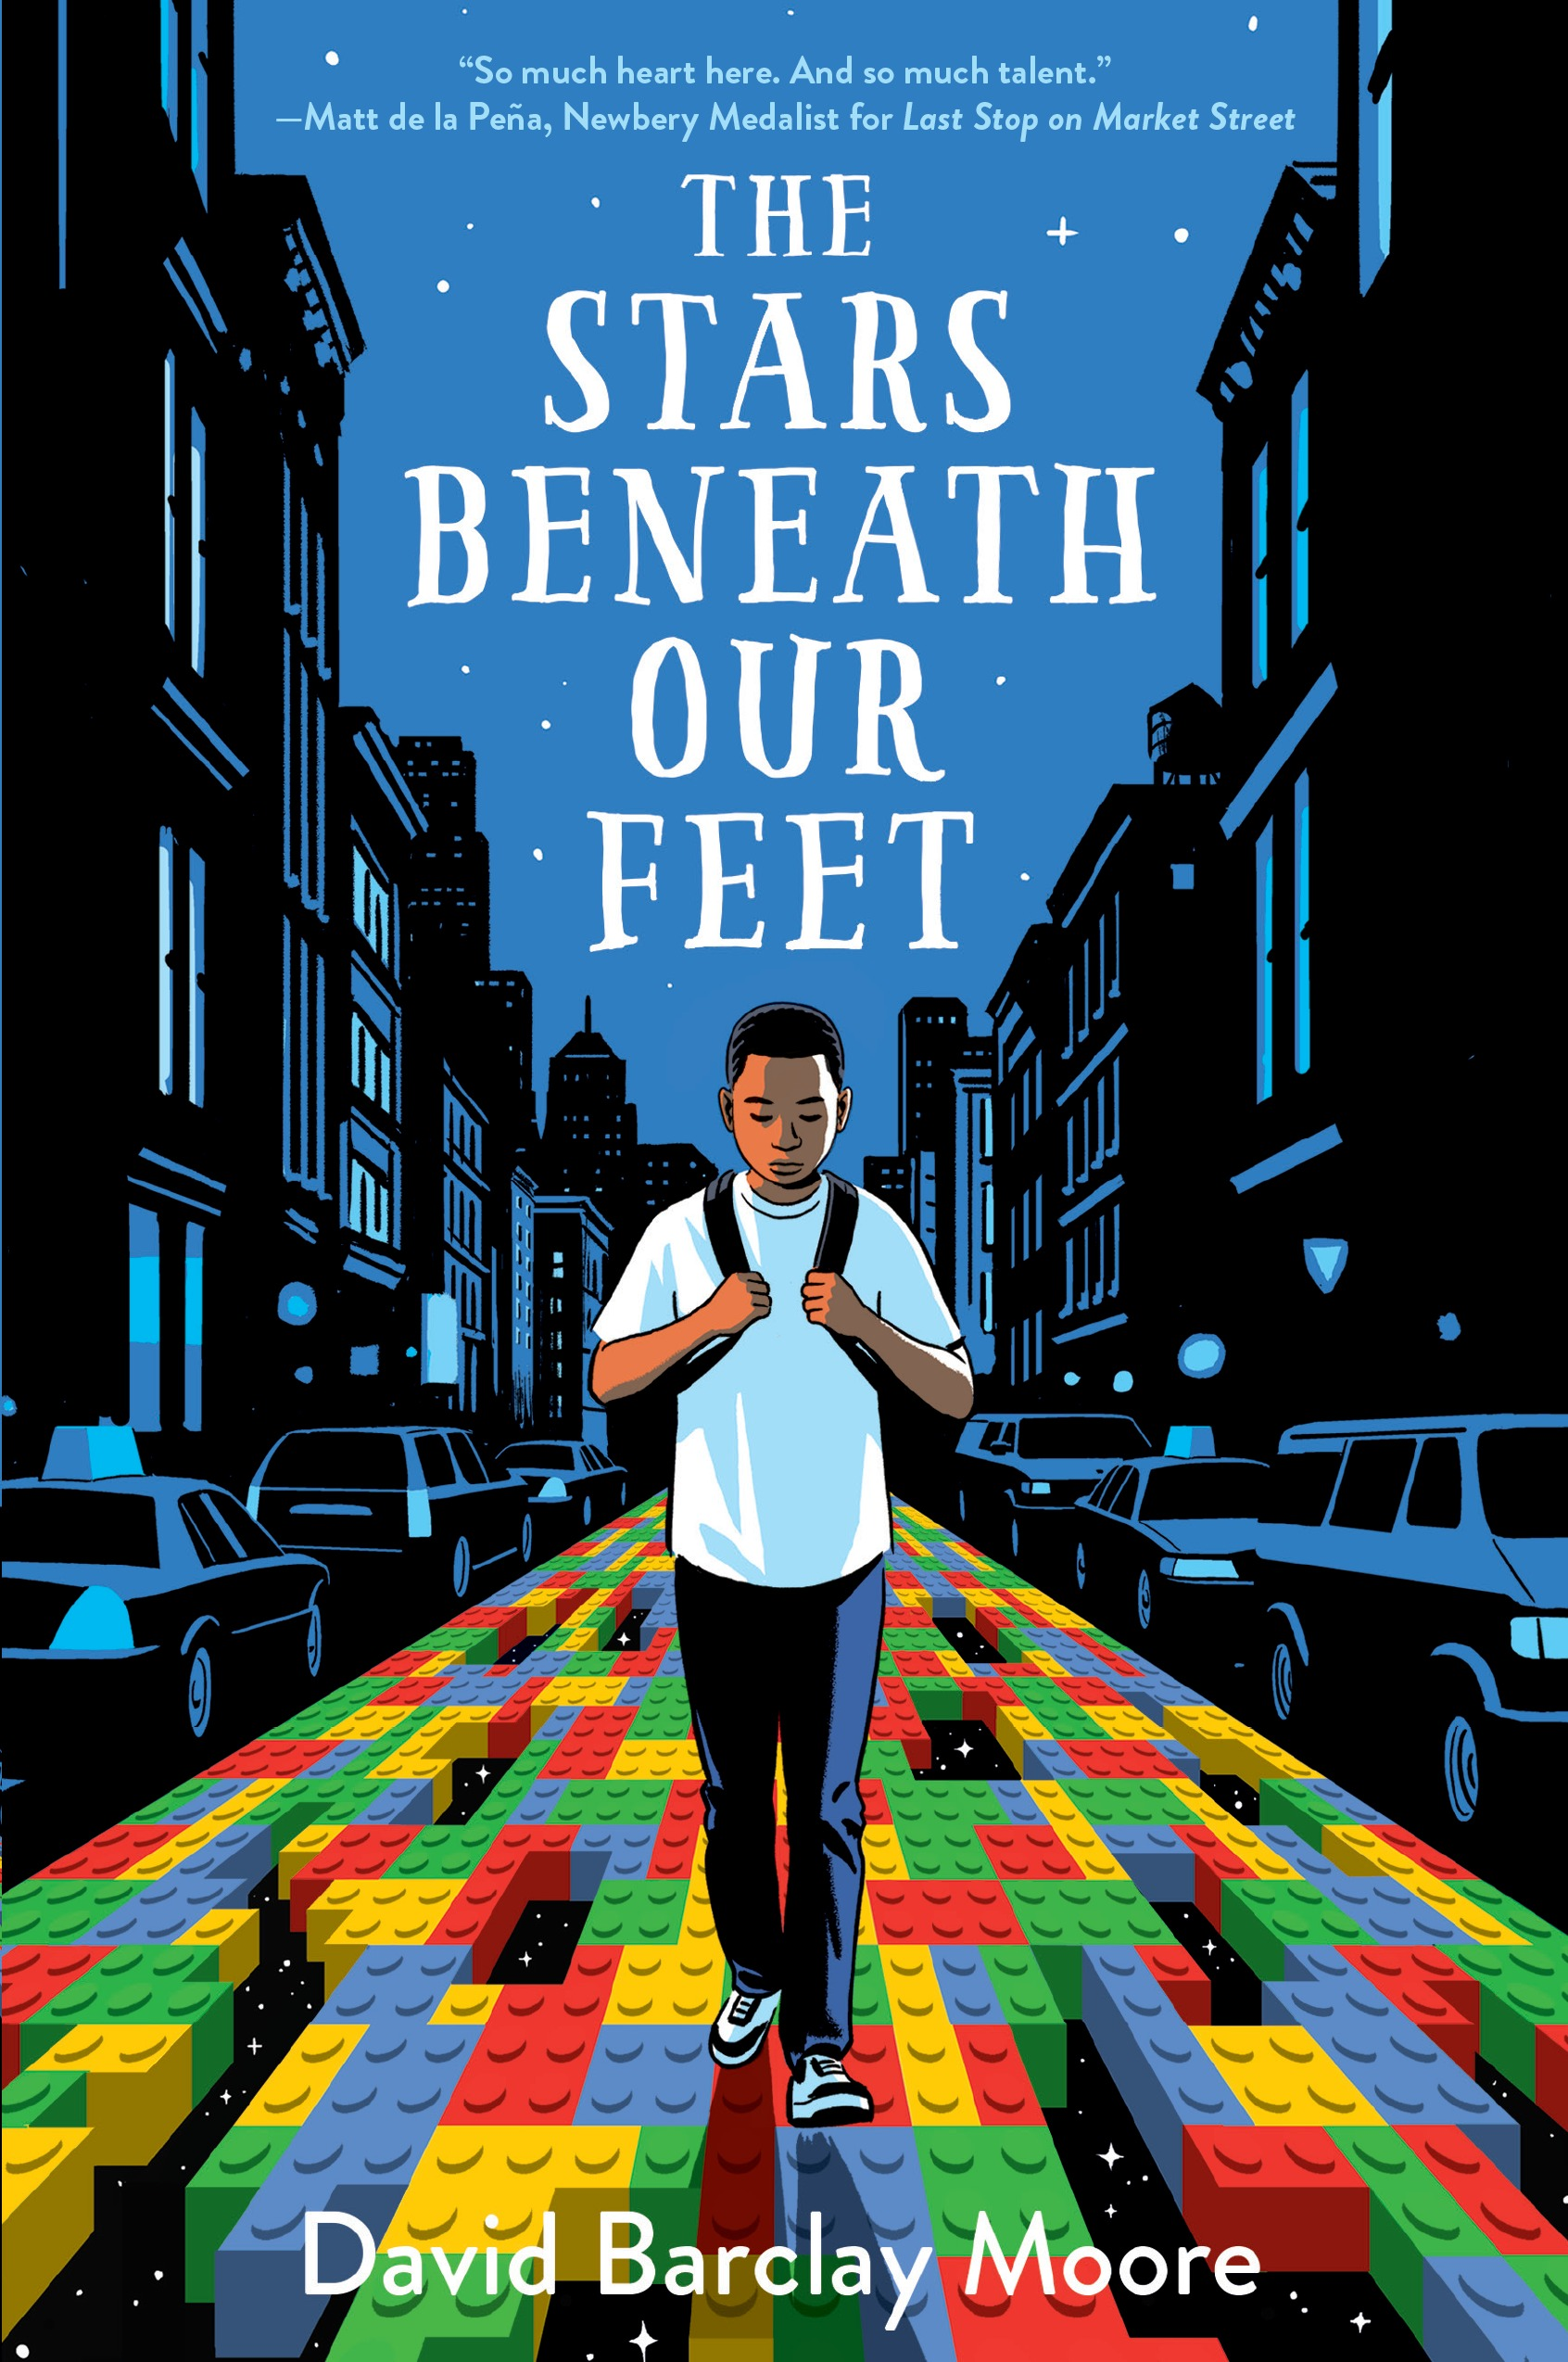 Tween Book Club: The Stars Beneath Our Feet by David Barclay Moore — Featuring a Visit from the Author!